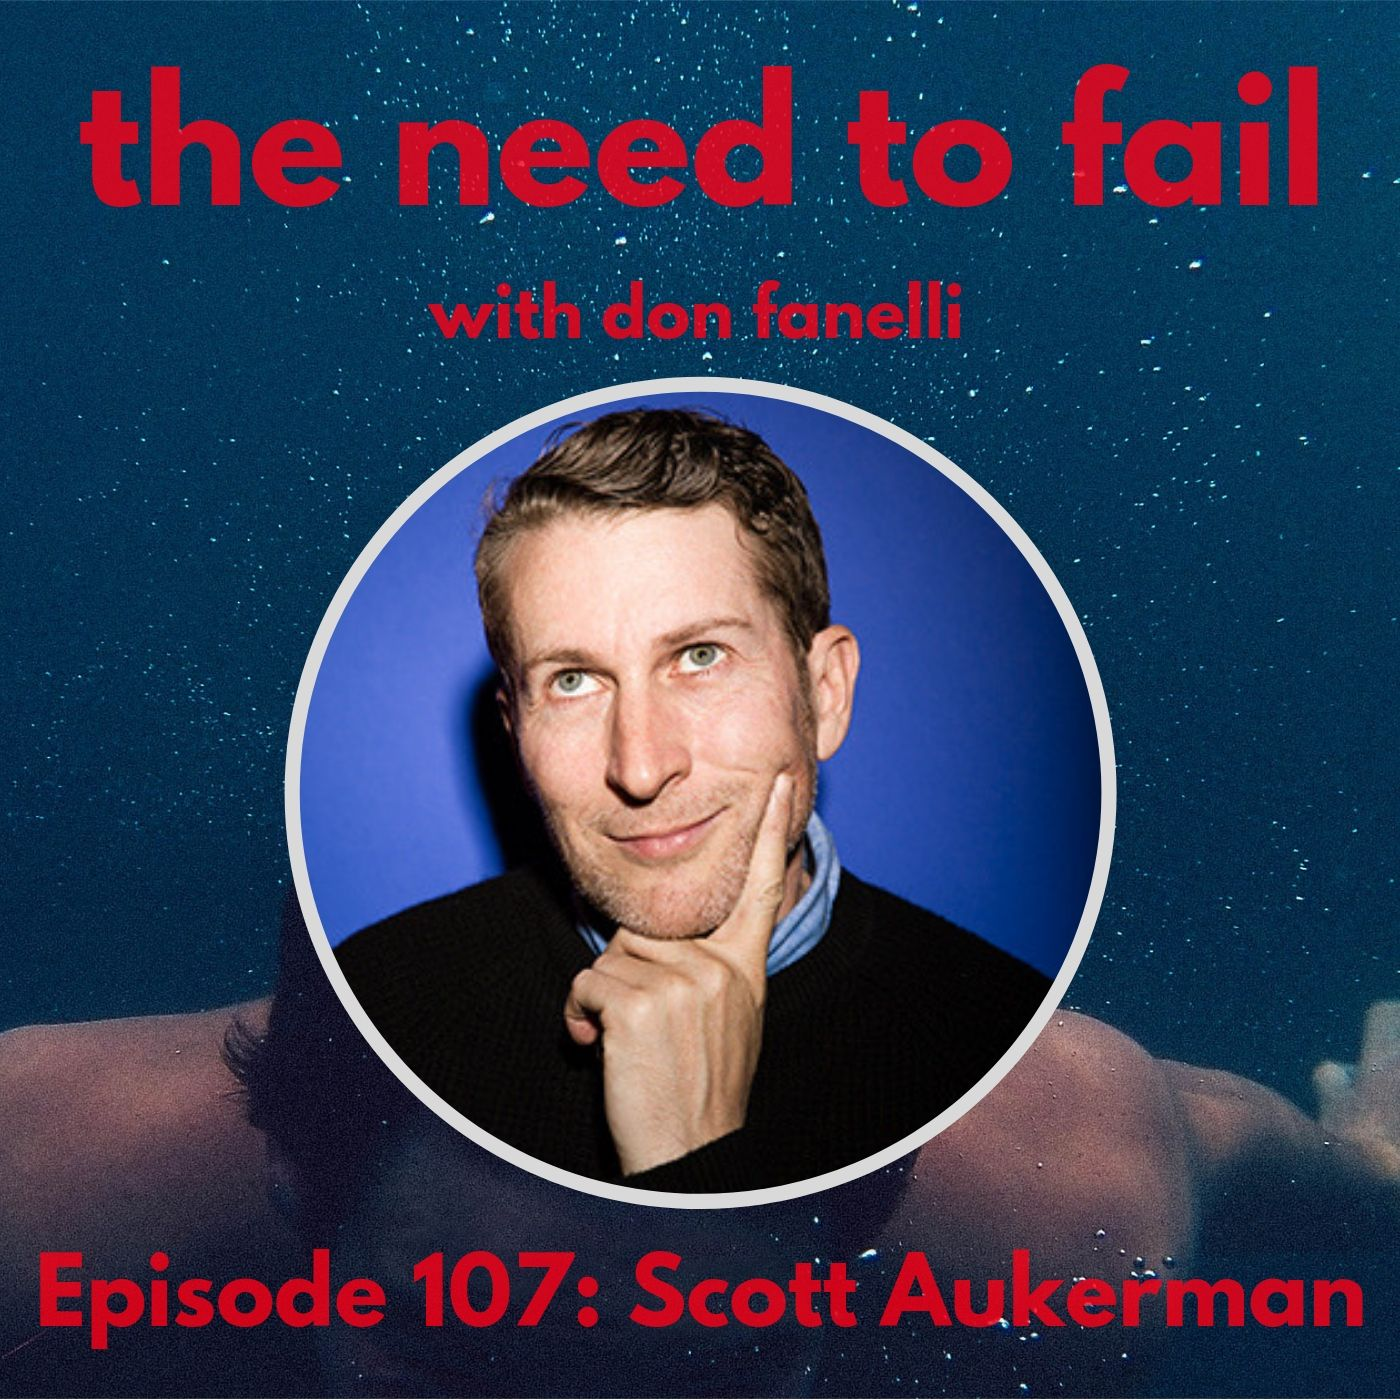 Episode 107: Scott Aukerman